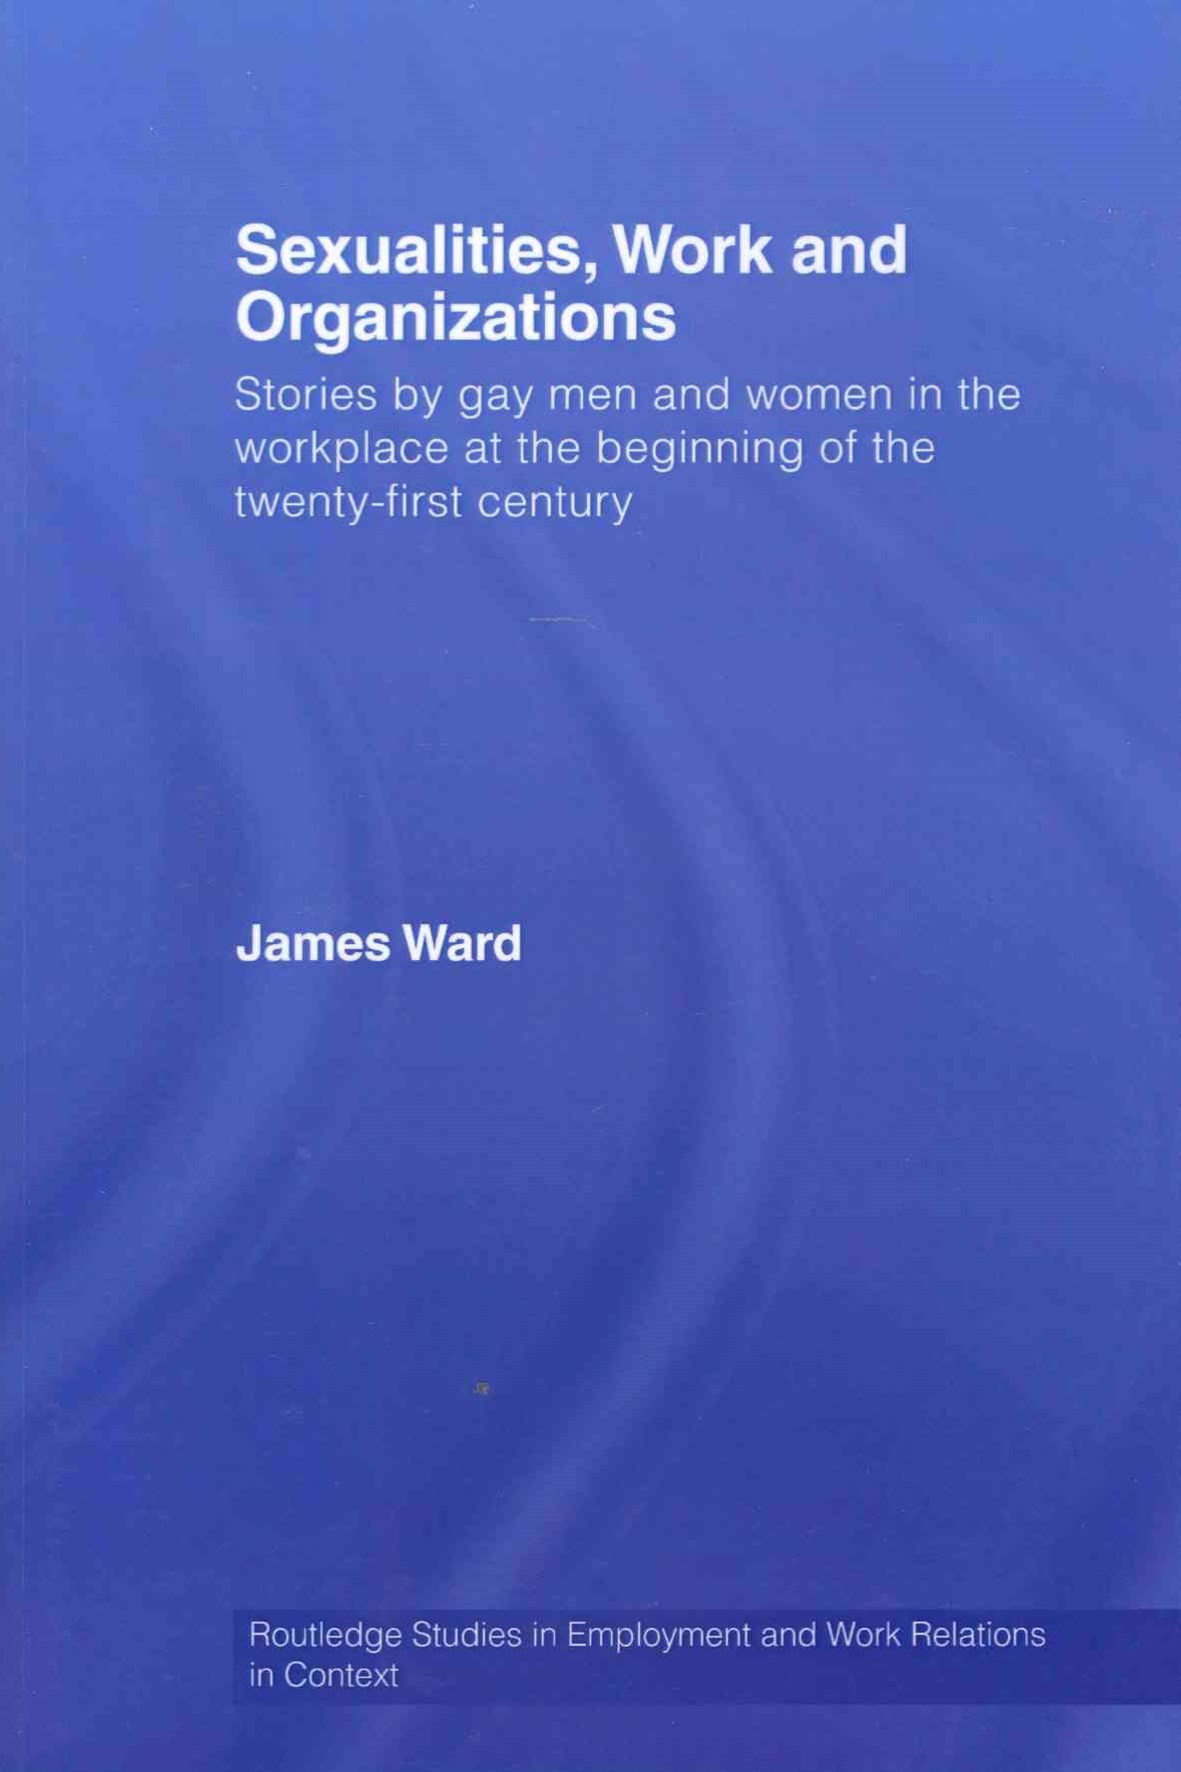 Sexualities, Work and Organizations